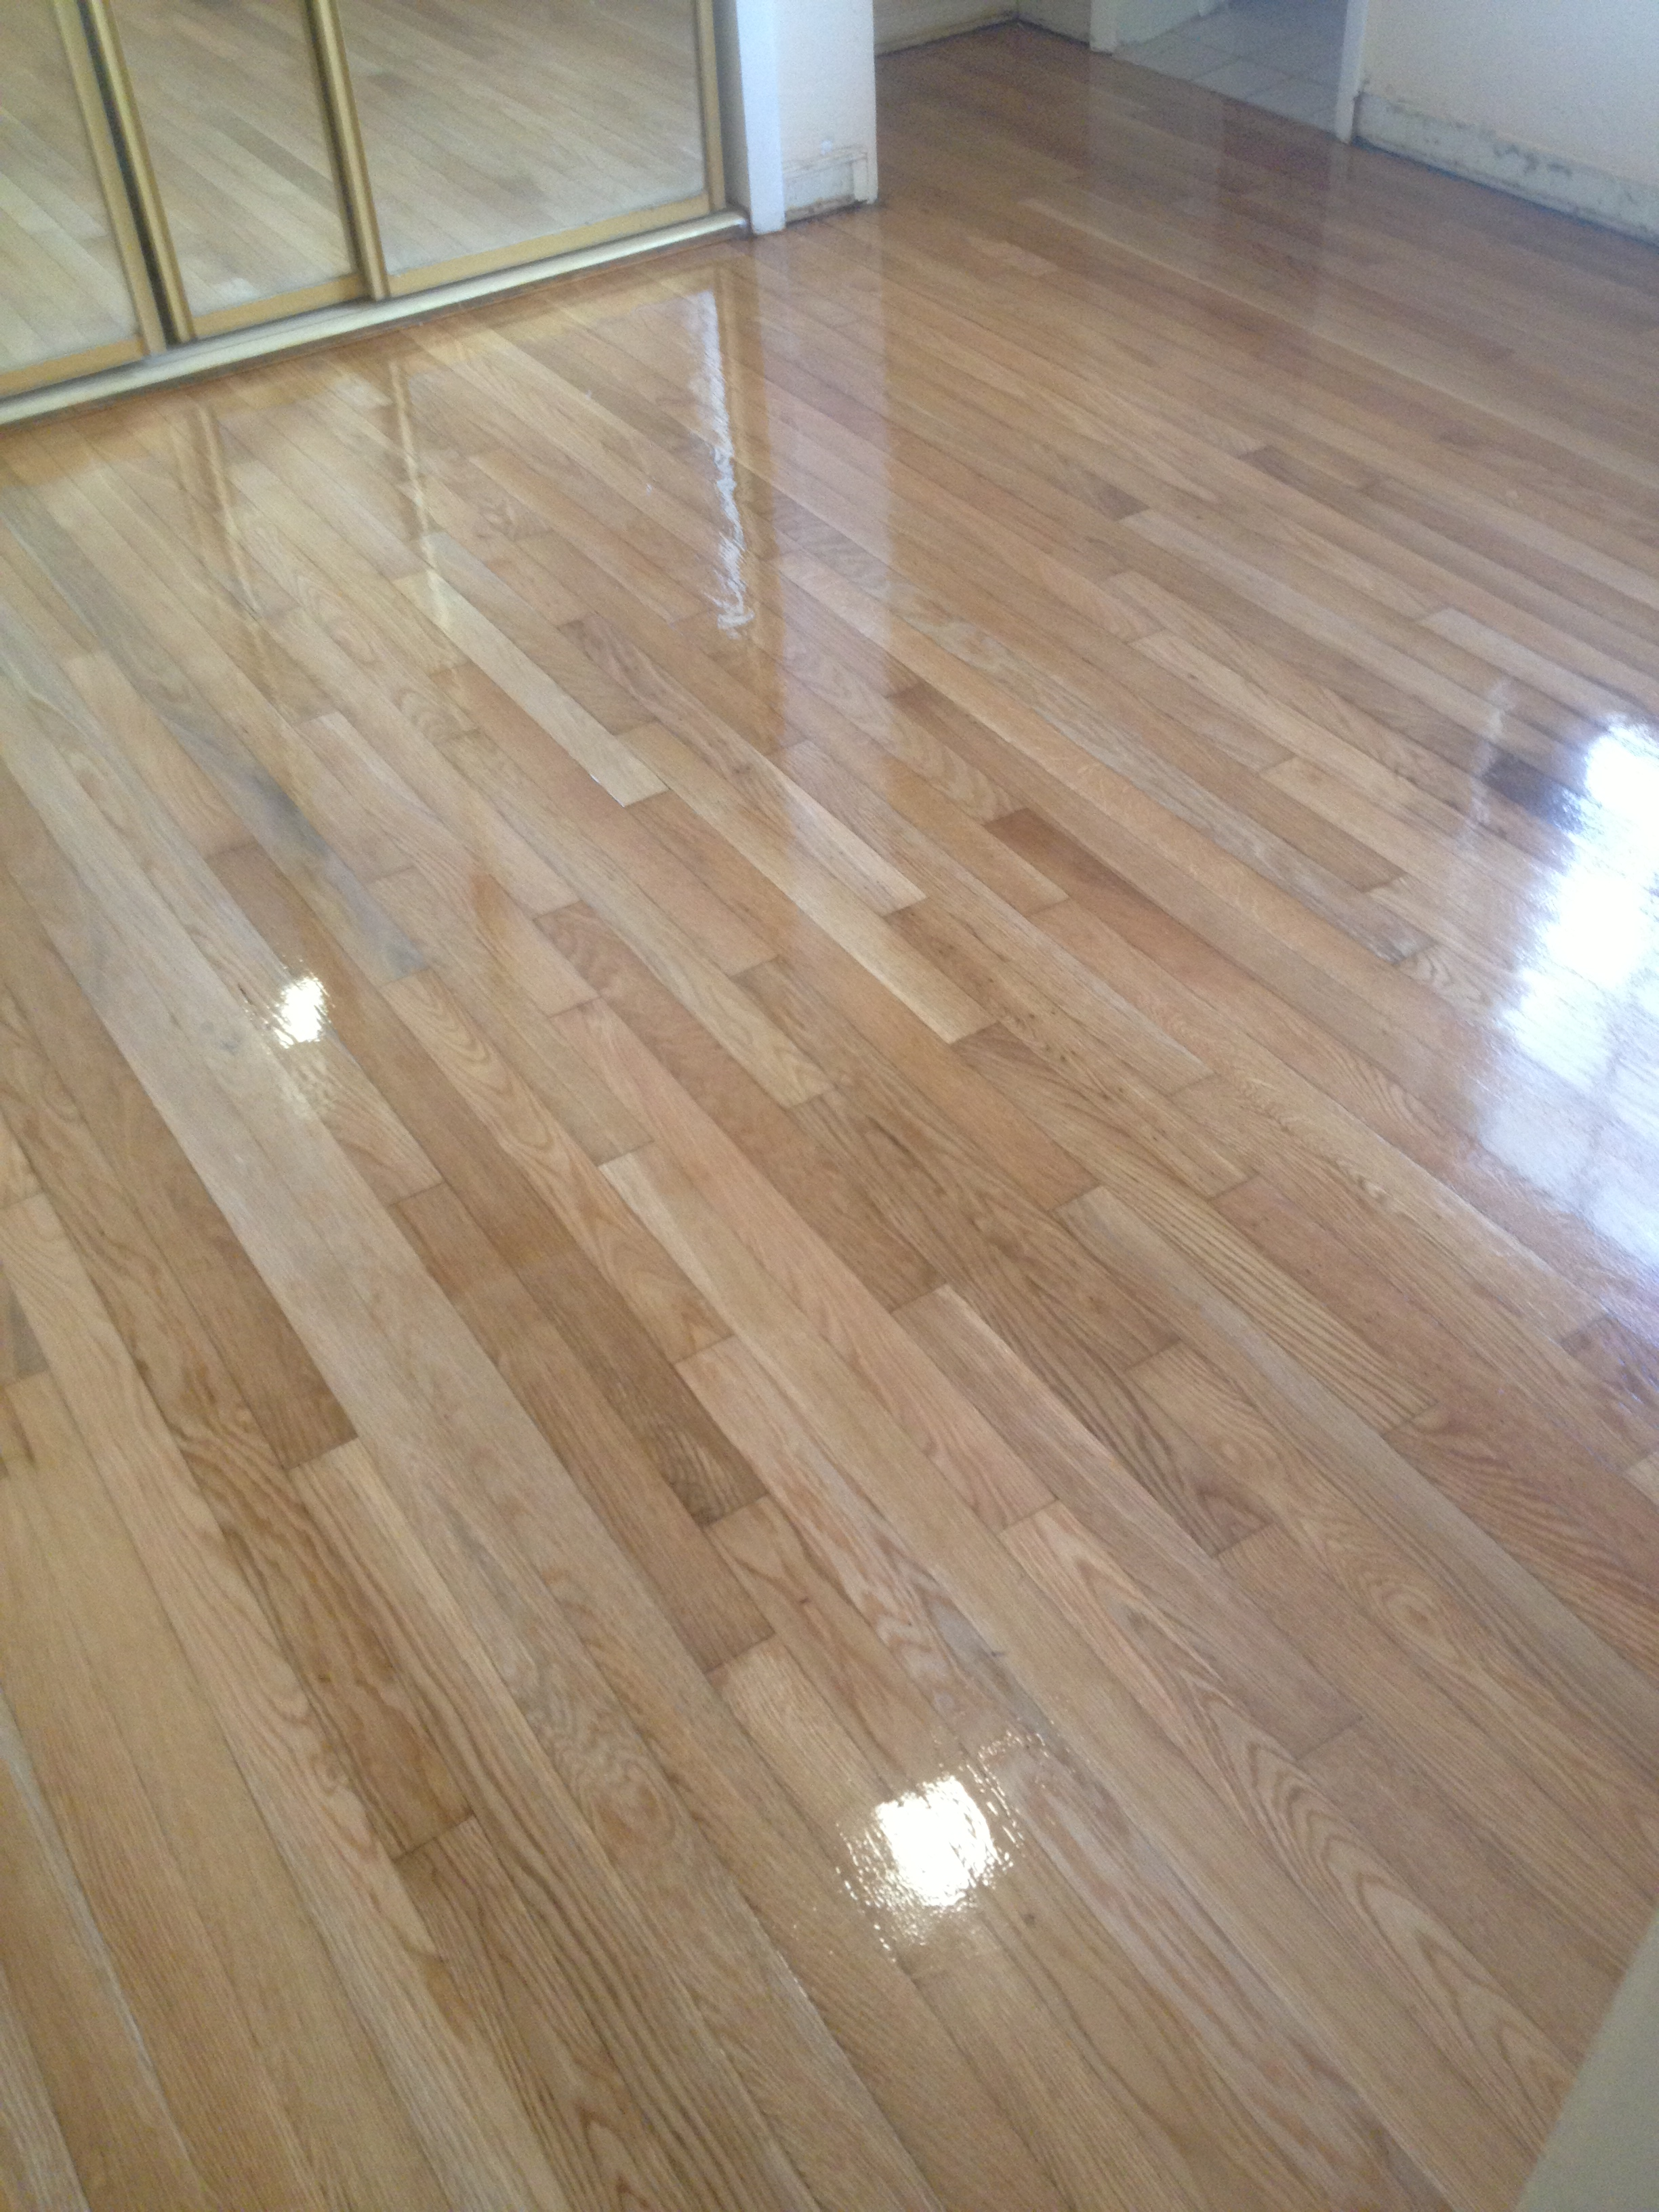 Apex wood floors inc at 6499 sw 39th st miami fl on fave for Hardwood flooring inc